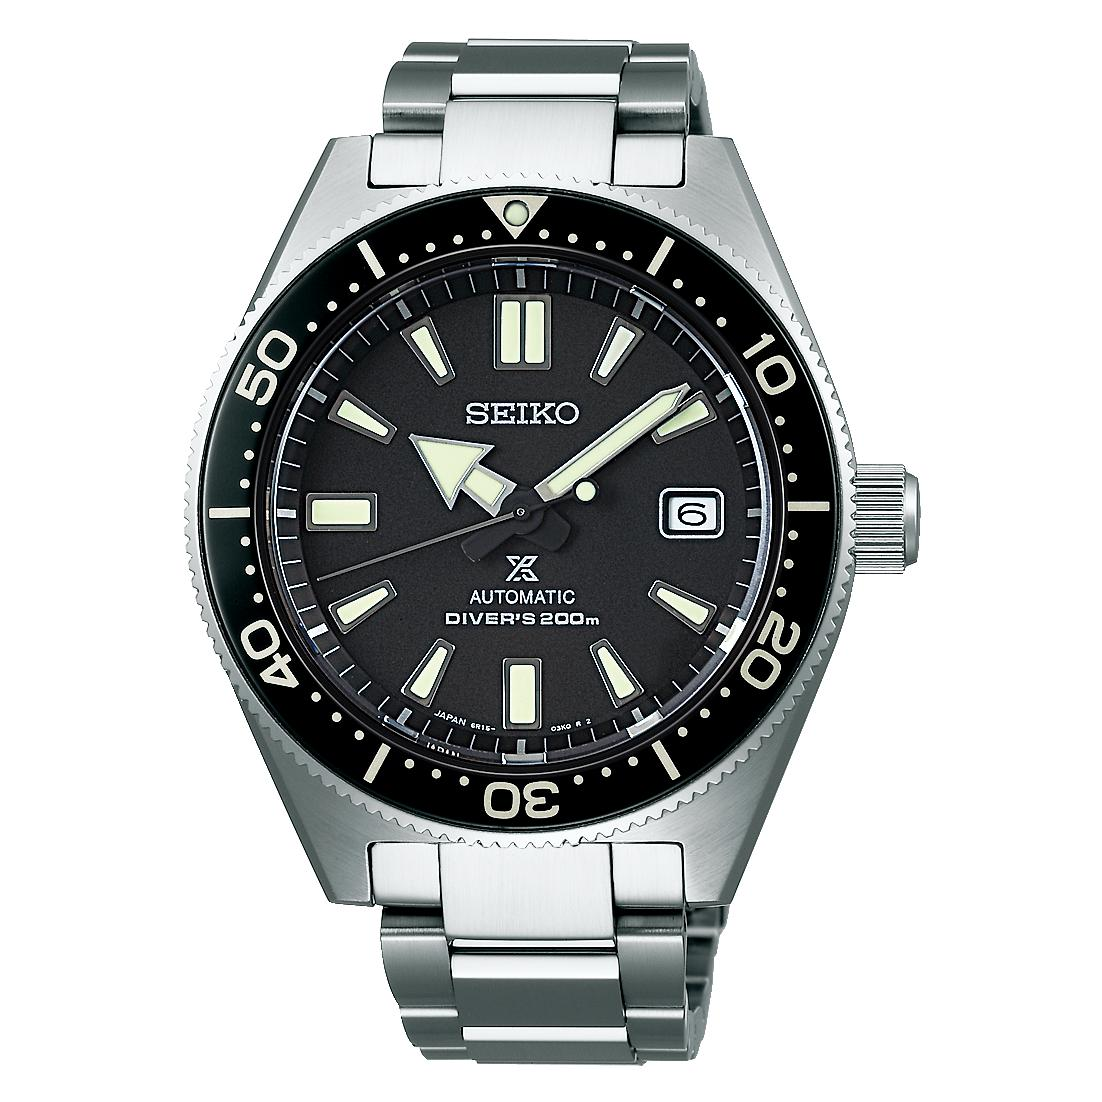 Made In Japan Brand New 100 Authentic Seiko Prospex 62Mas Relaunch Of The First Divers On 6R15 Movement Automatic Mens Diver Watch Spb051J Spb051 Sbdc051J Sbdc051 Lowest Price